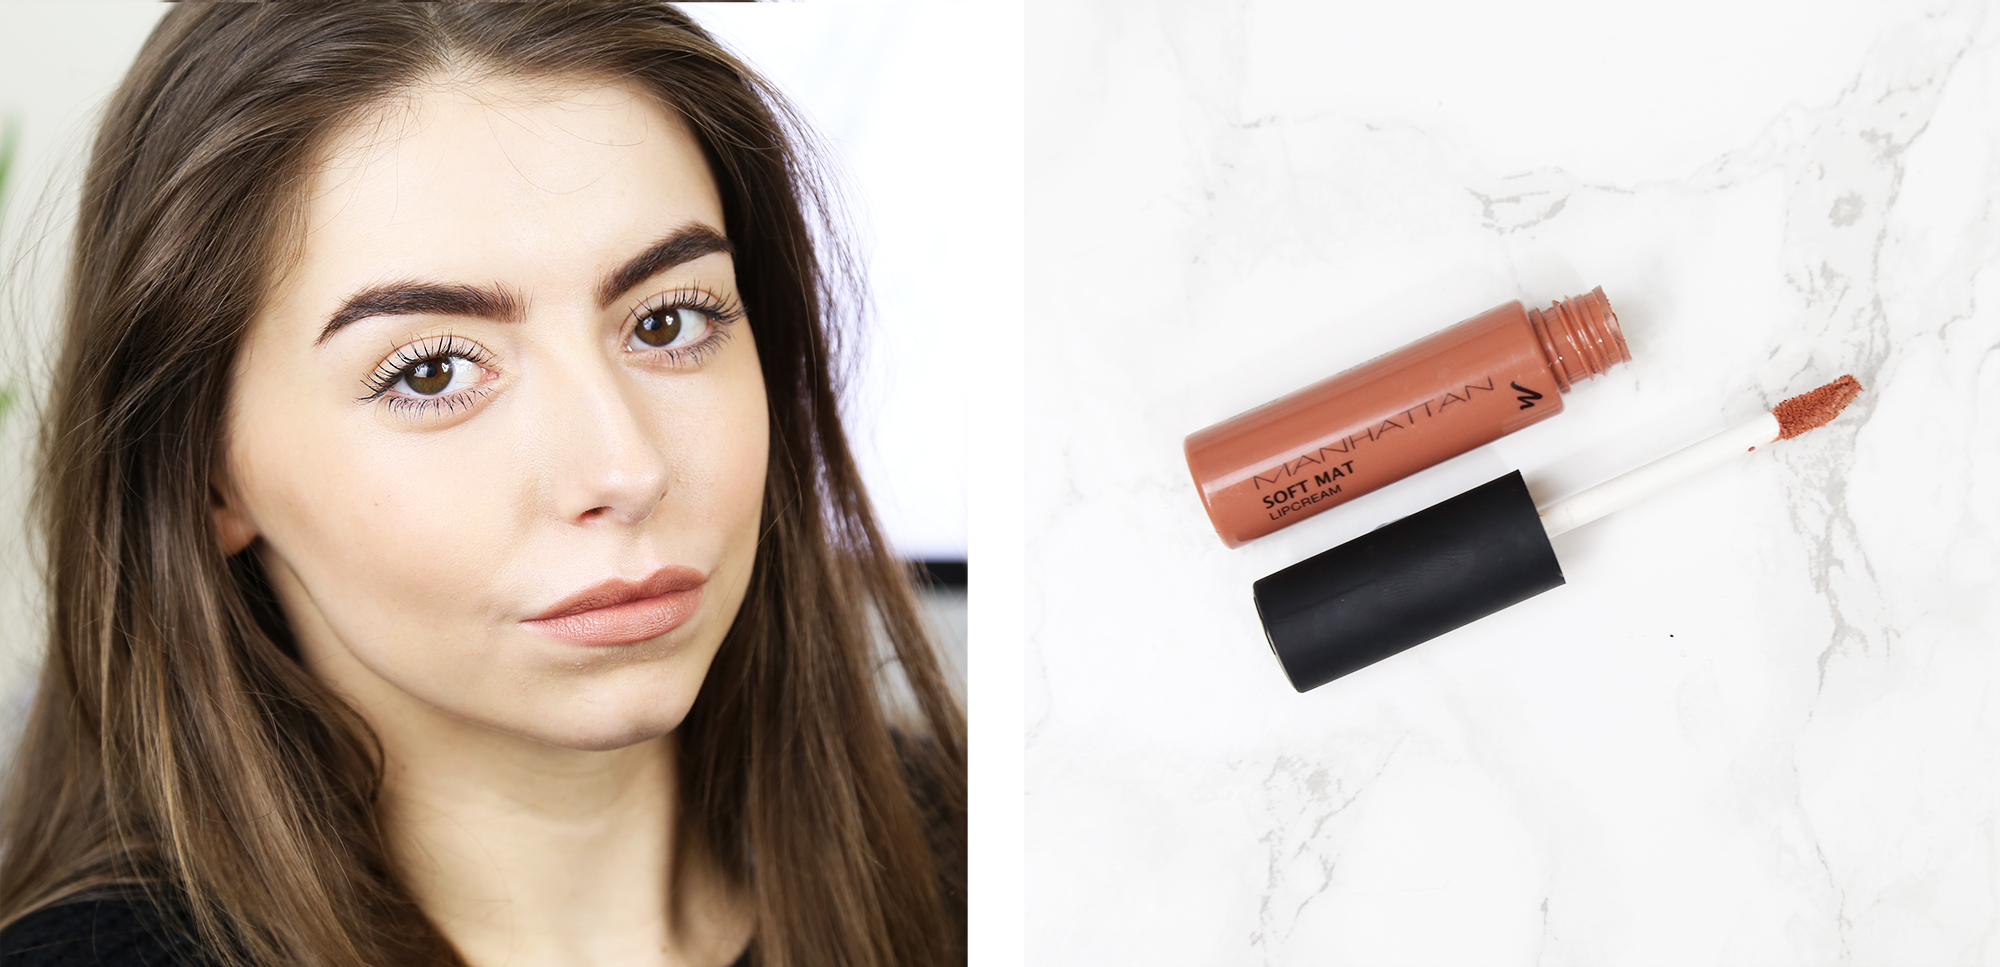 Cocochic+Kylie+Jenner+Nude+Lipstick+Swatches+Manhattan+Lip+Cream